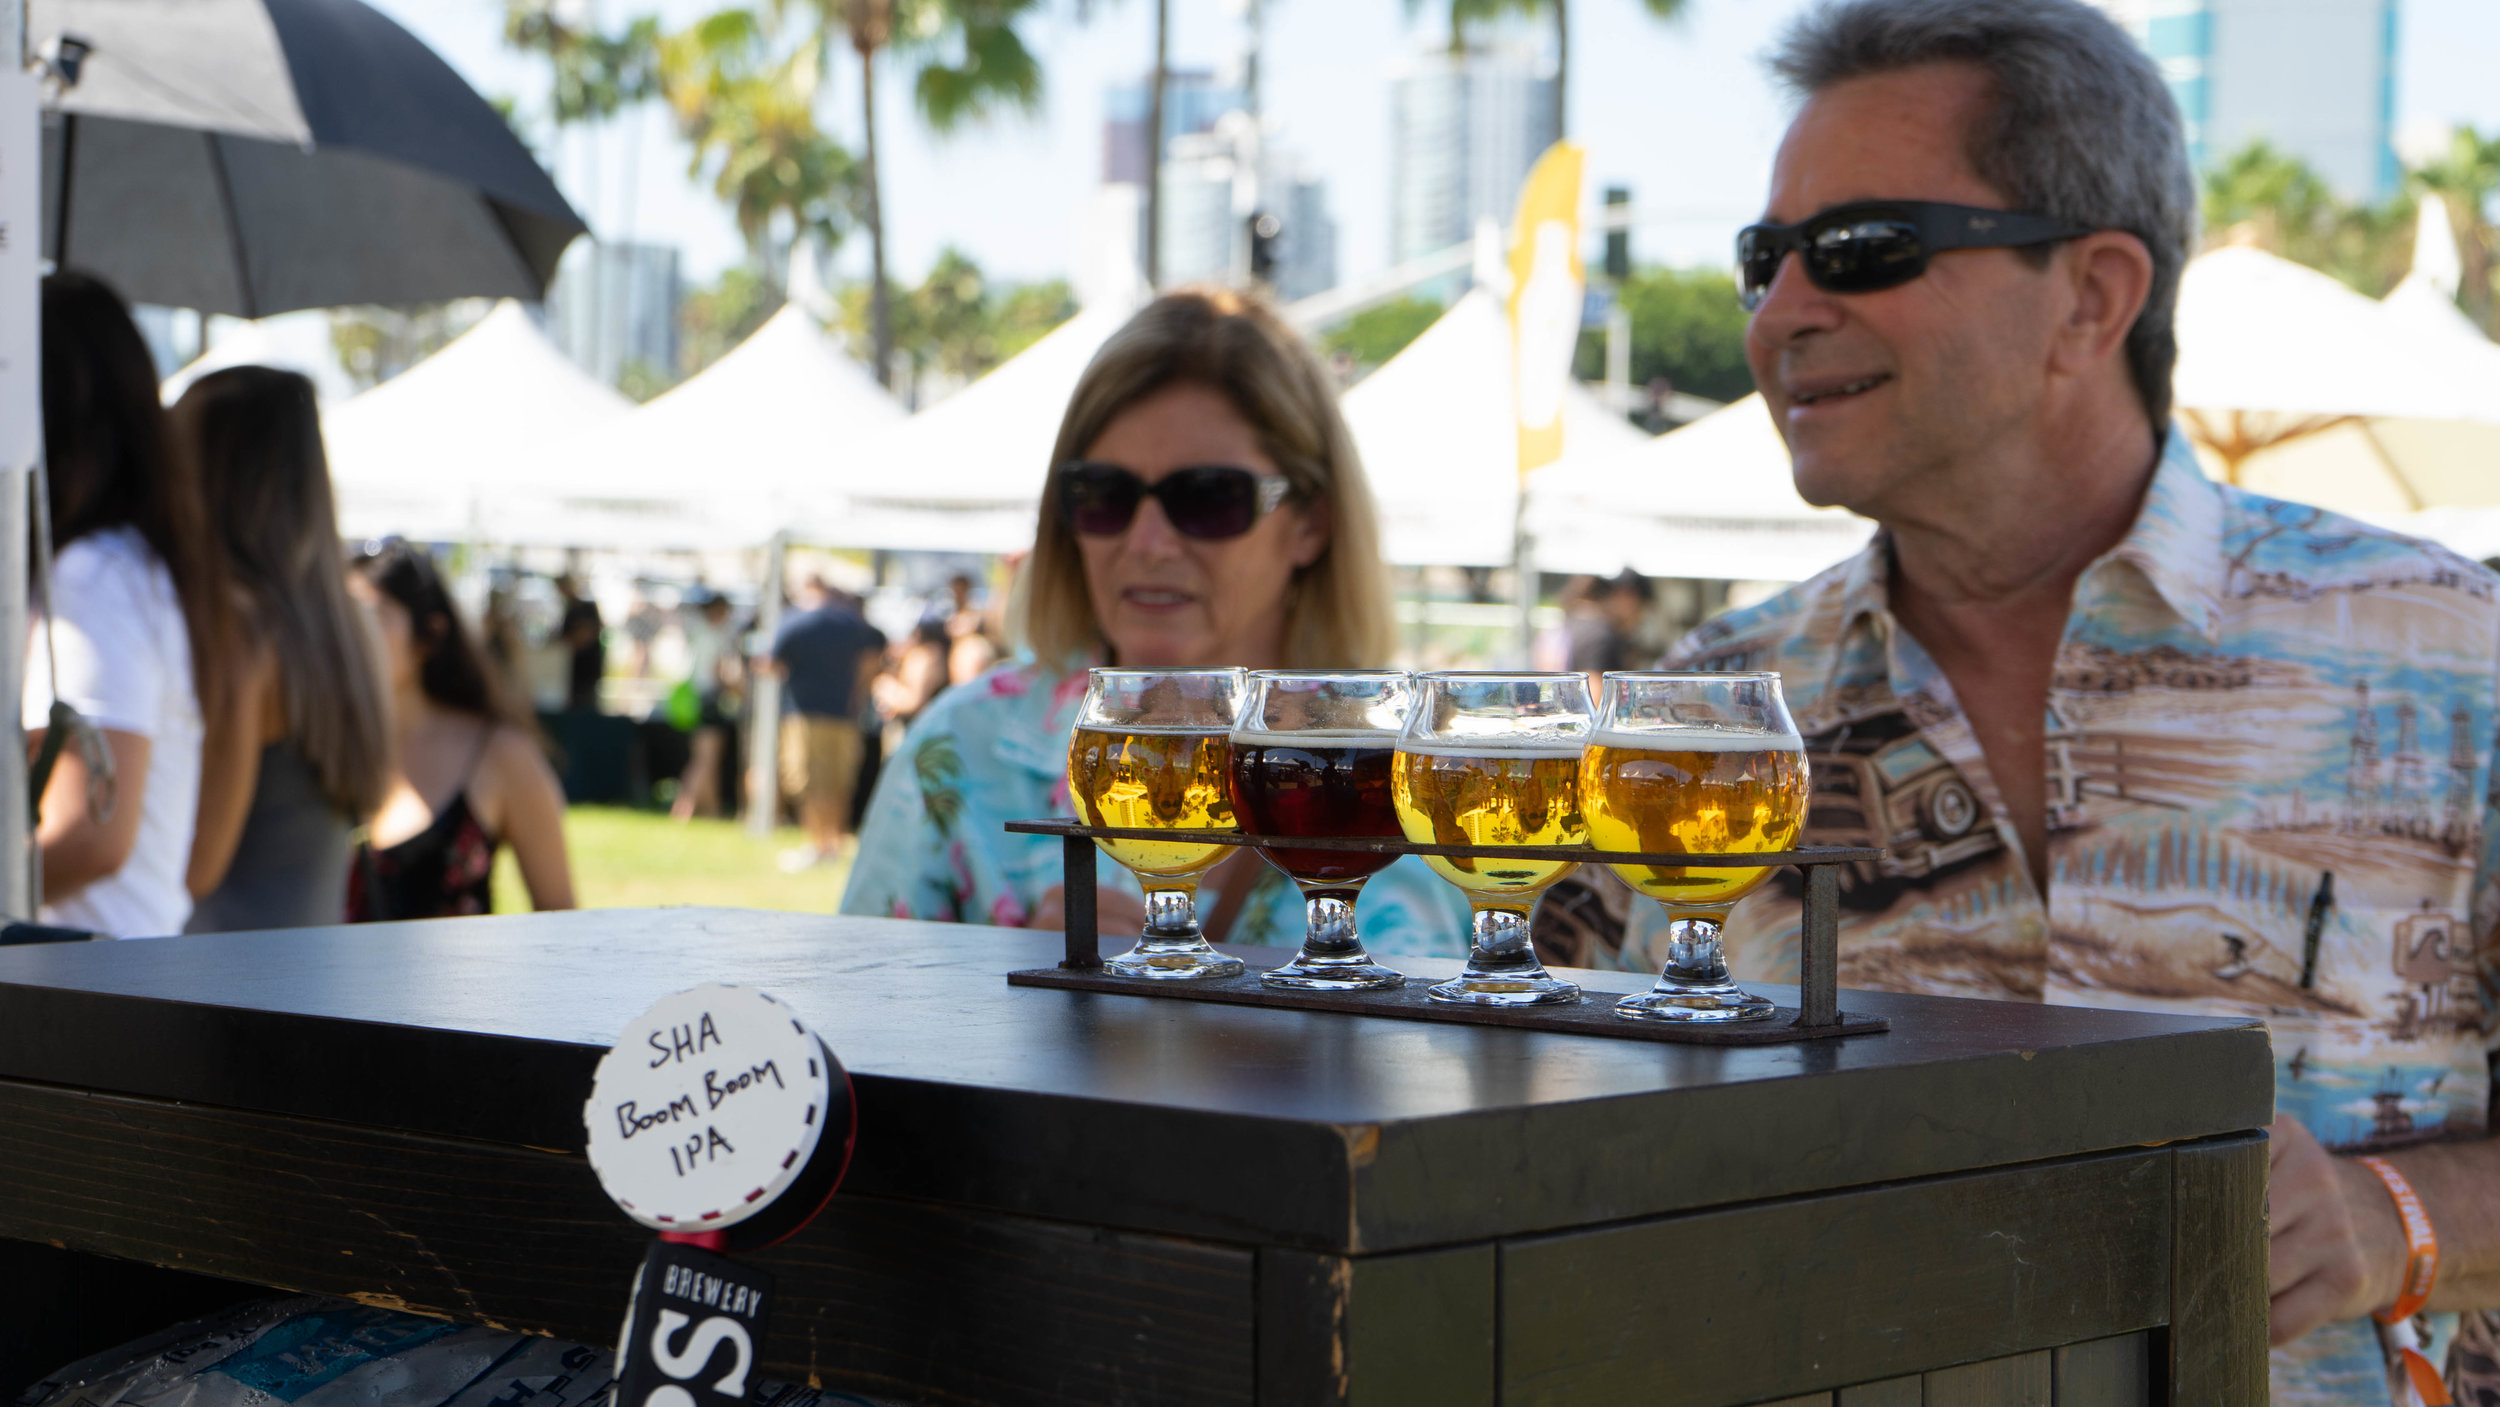 Each booth had a few different beers to sample. Some even served up specials made just for the event.